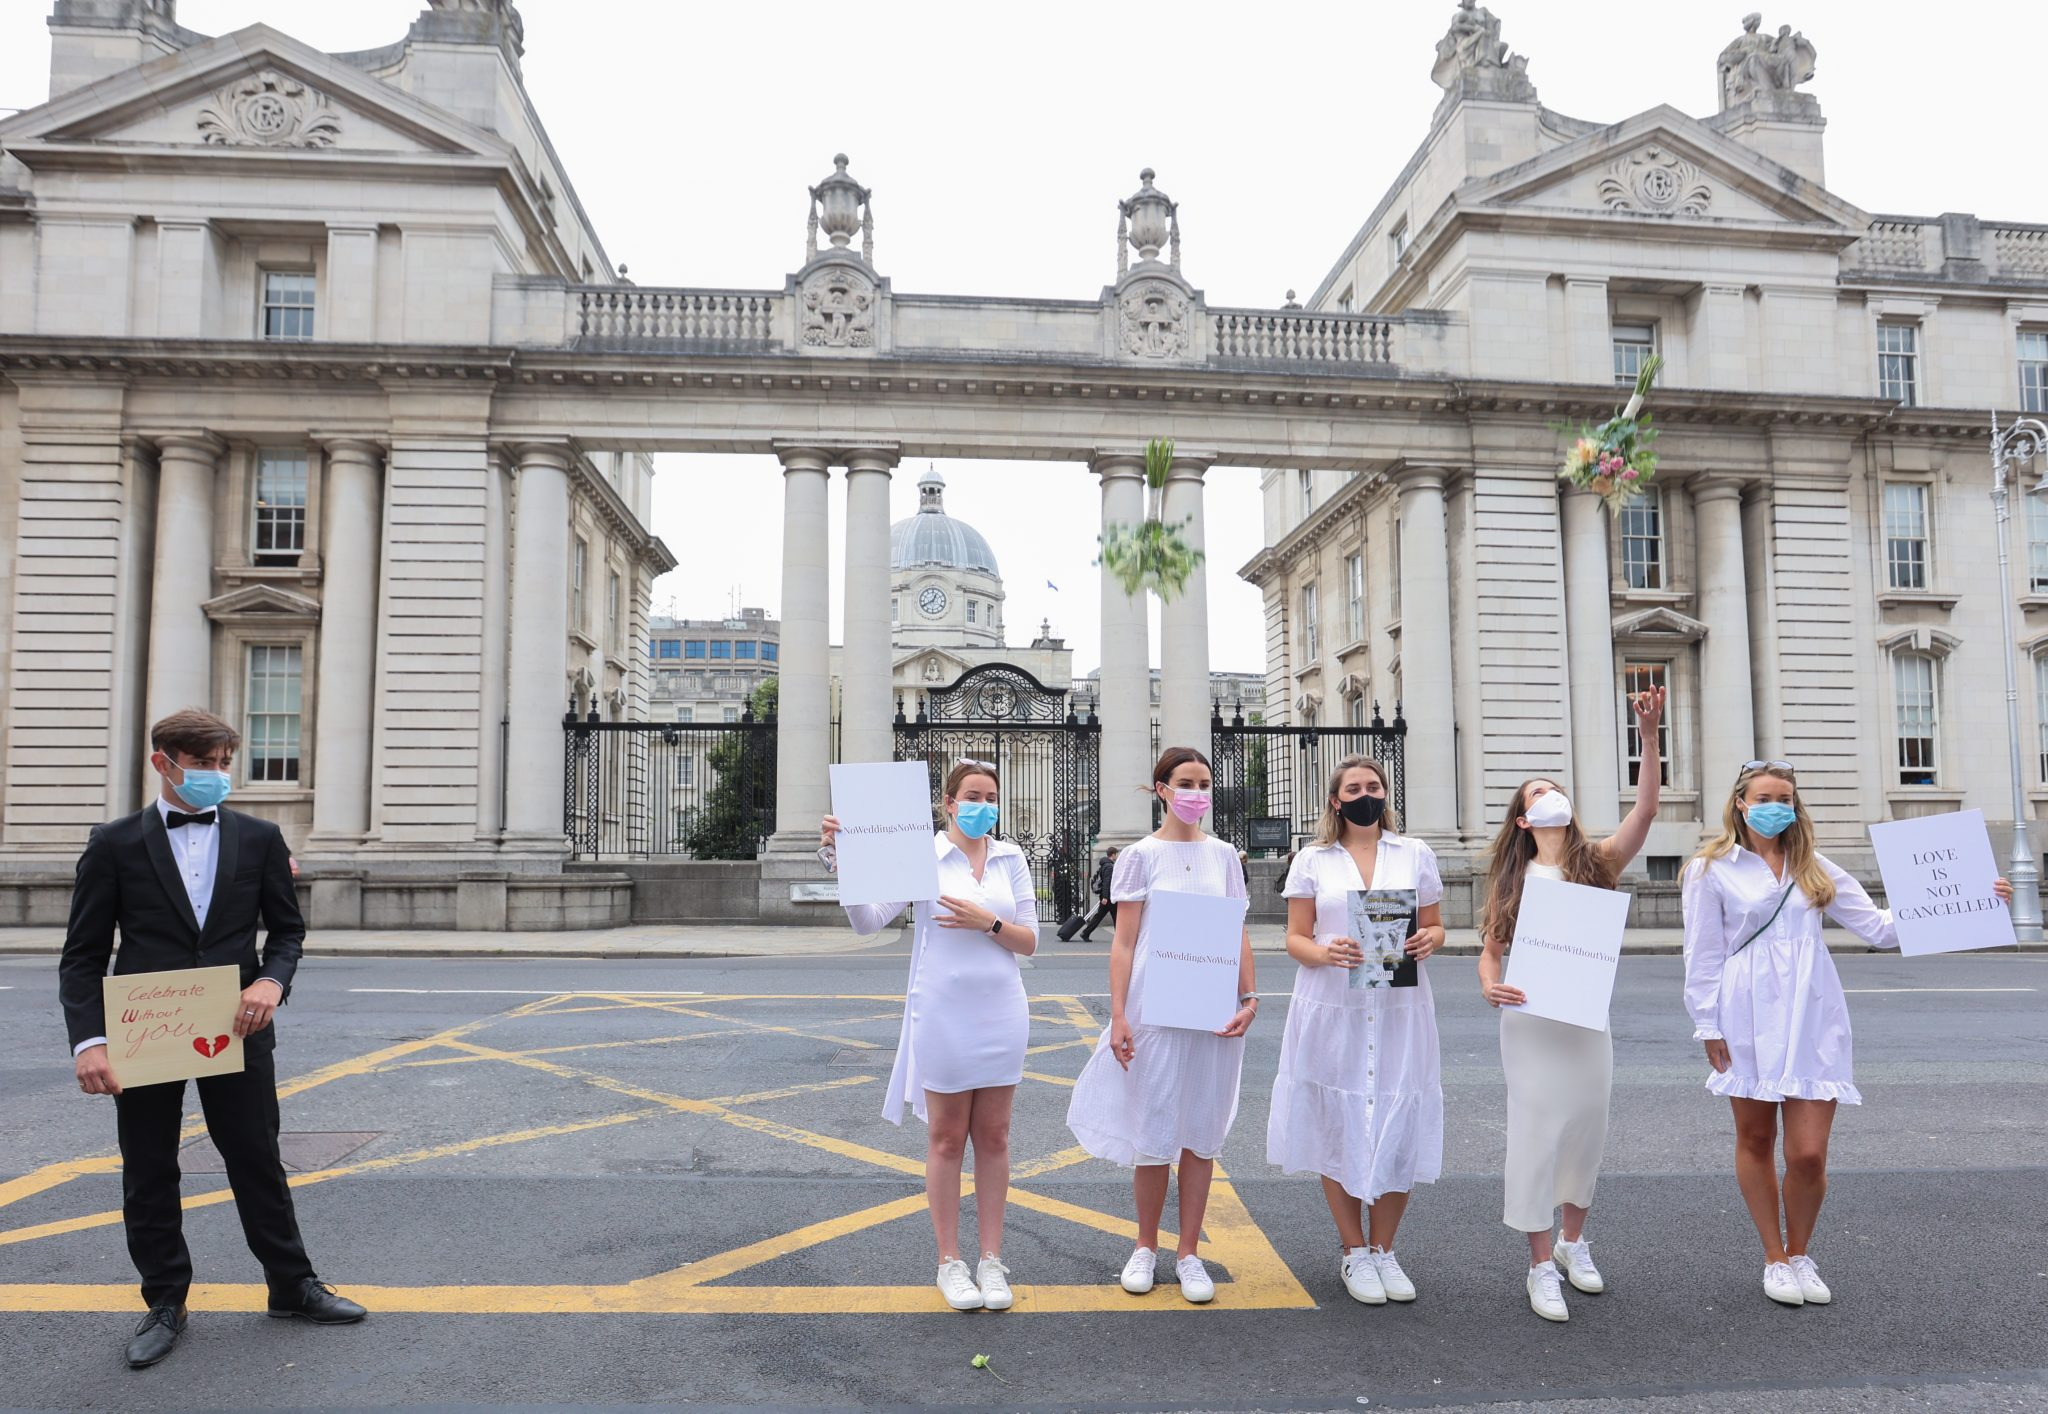 Brides-to-be outside Government Buildings, 27-07-2021. Image: Sam Boal/RollingNews